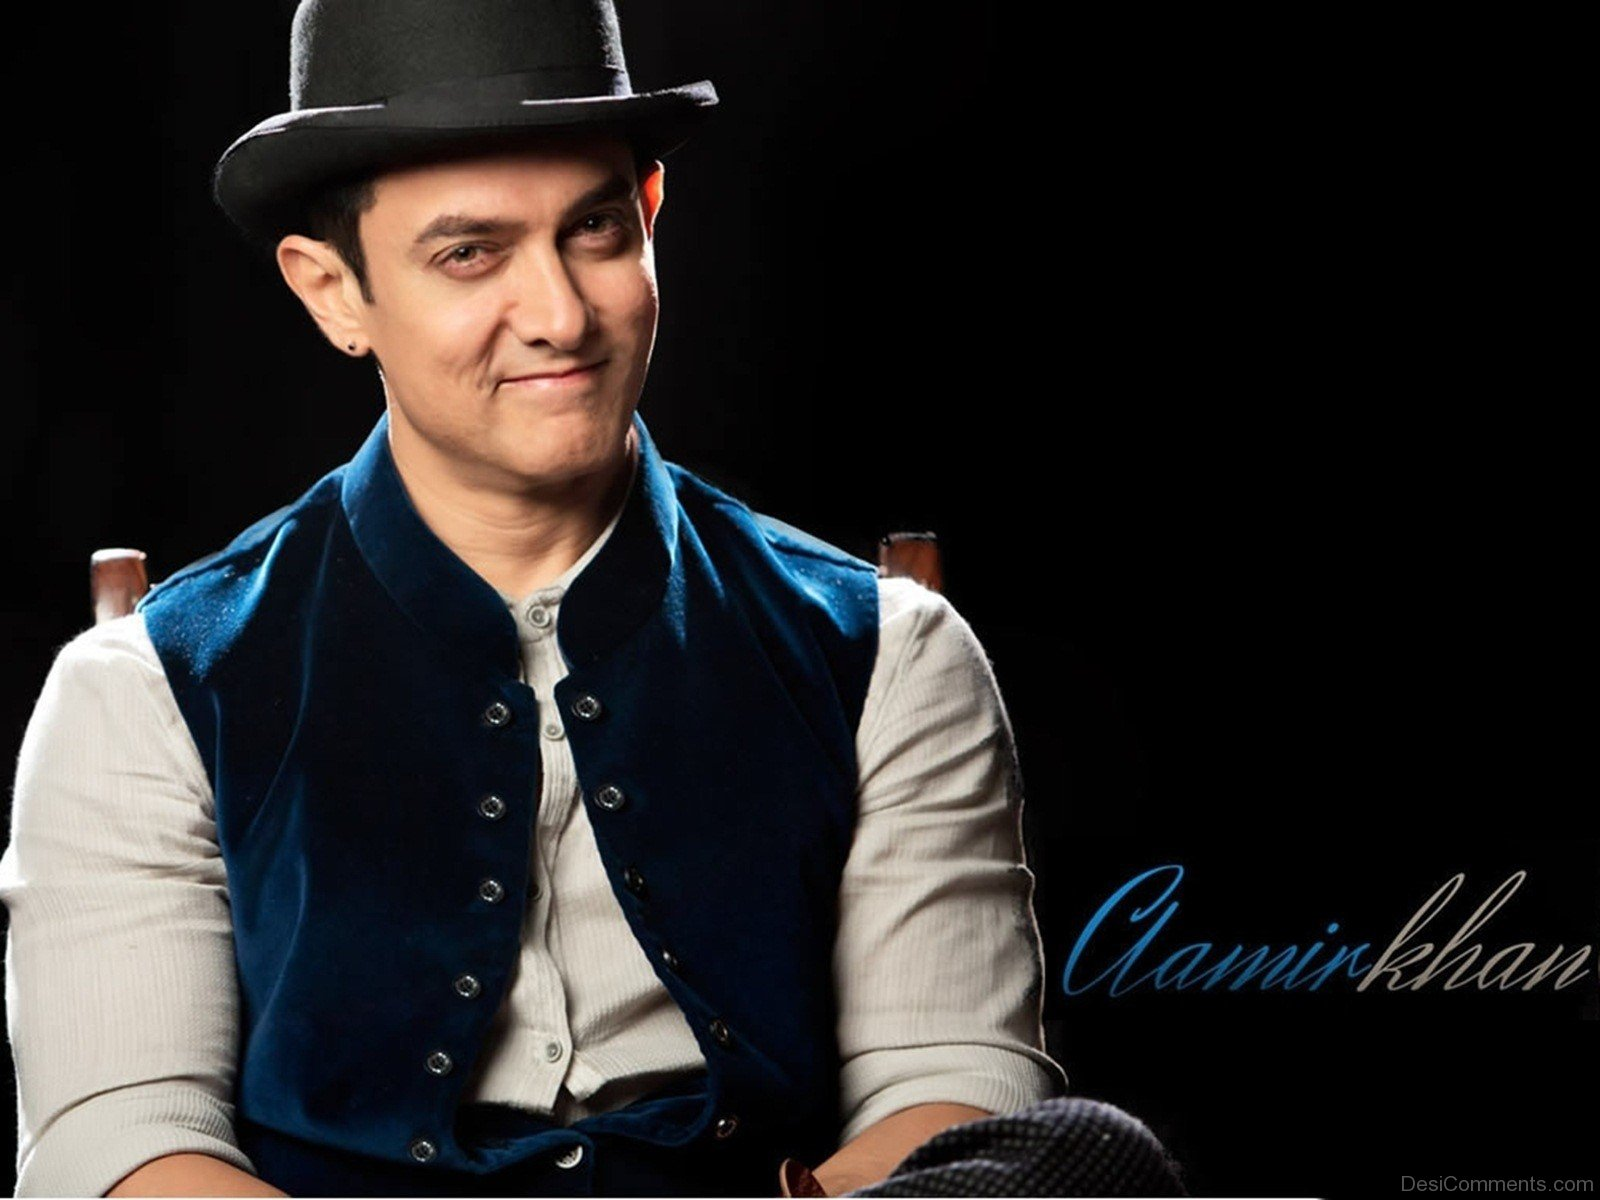 Srk Wallpapers With Quotes Aamir Khan Wallpapers Wallpapers Desicomments Com